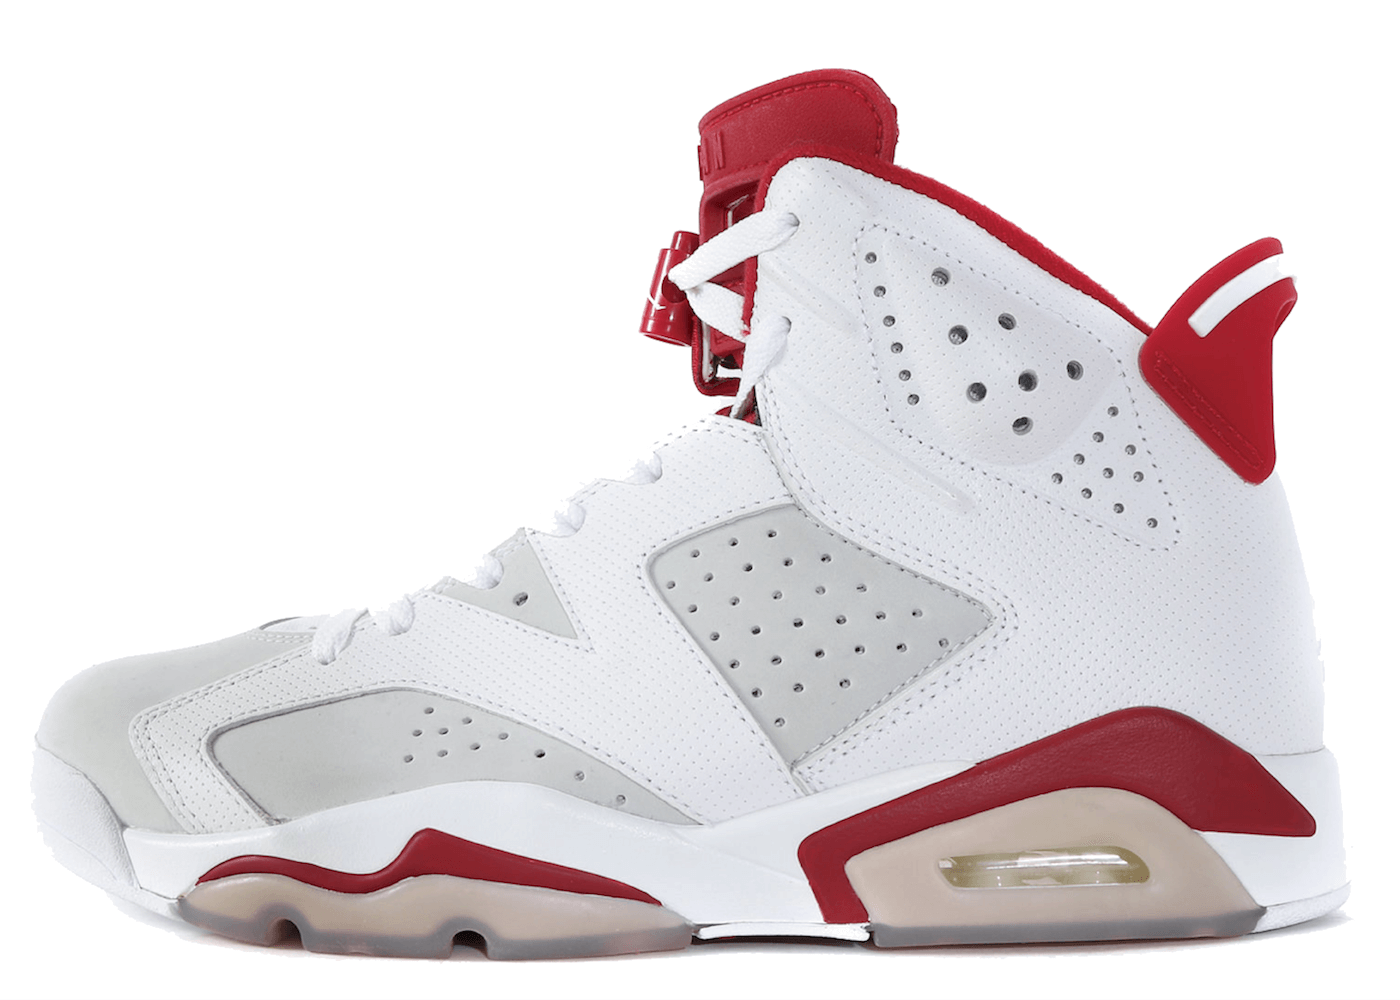 Jordan 6 Retro Alternate Hareの写真